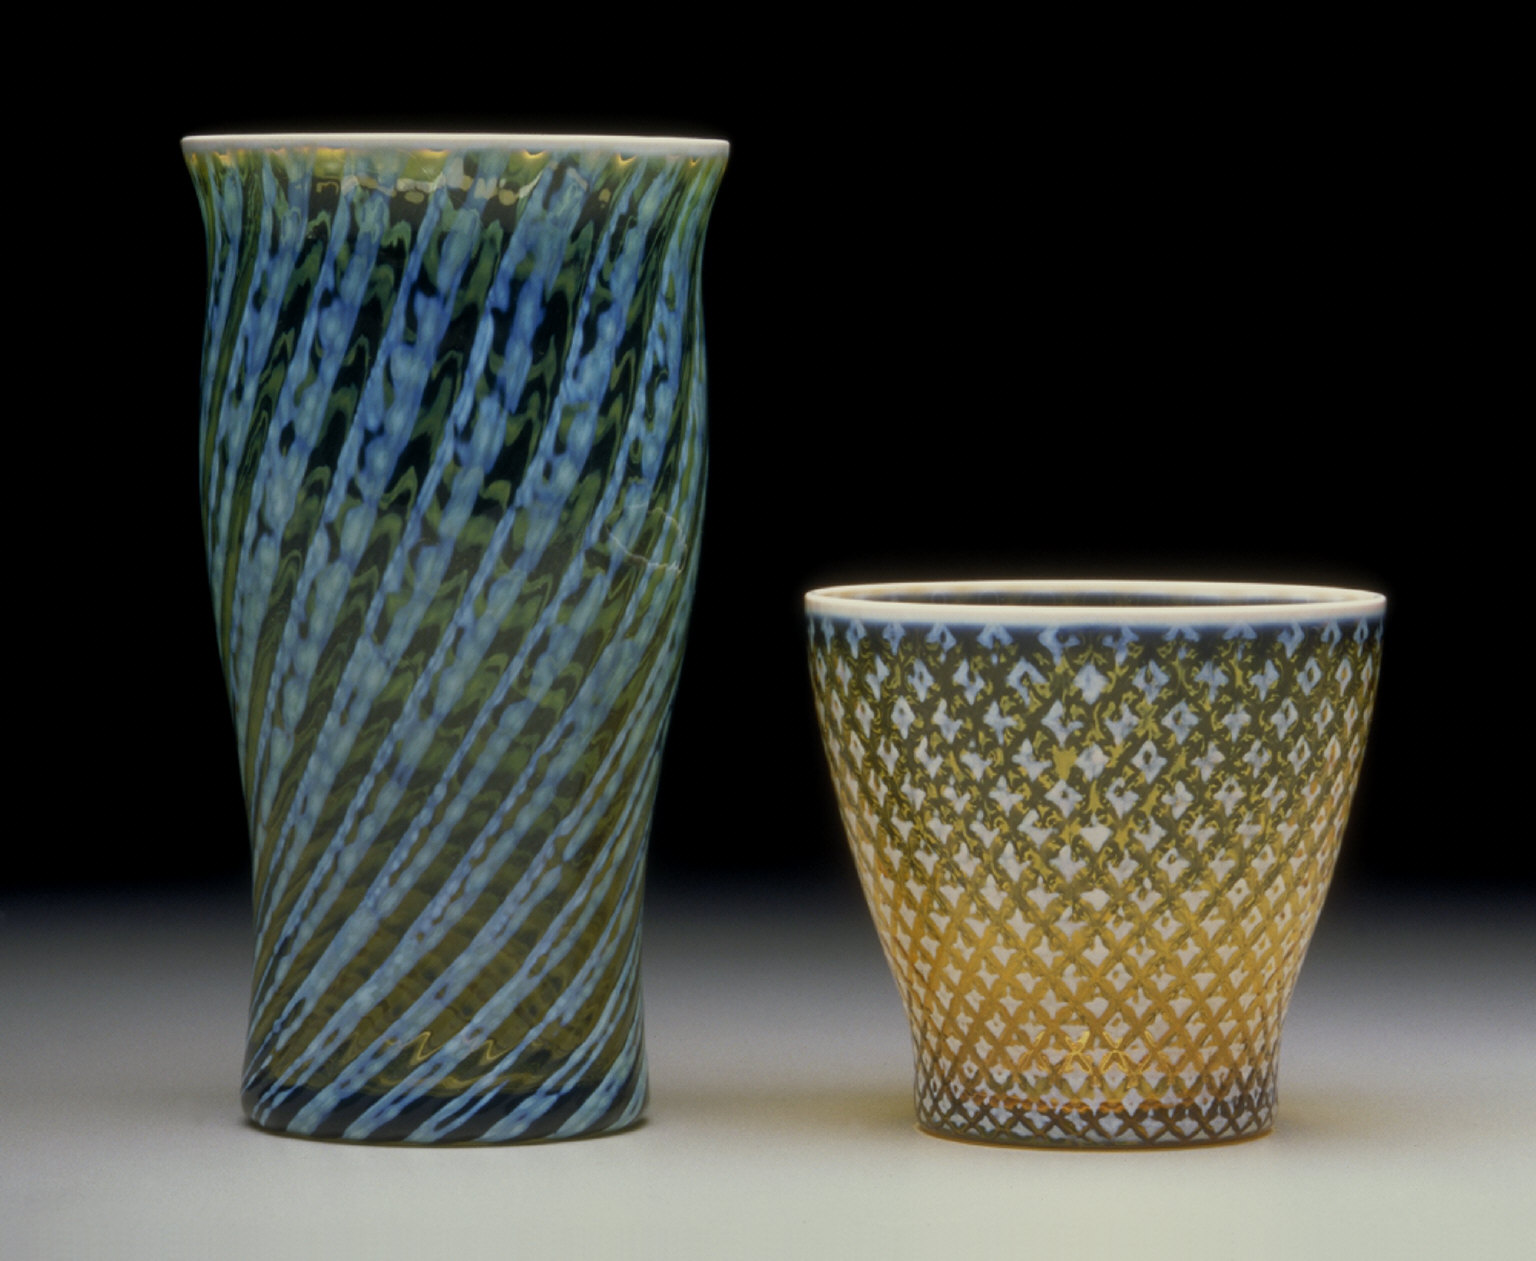 'Needlepoint' juice glass in 'Gold' colored glass